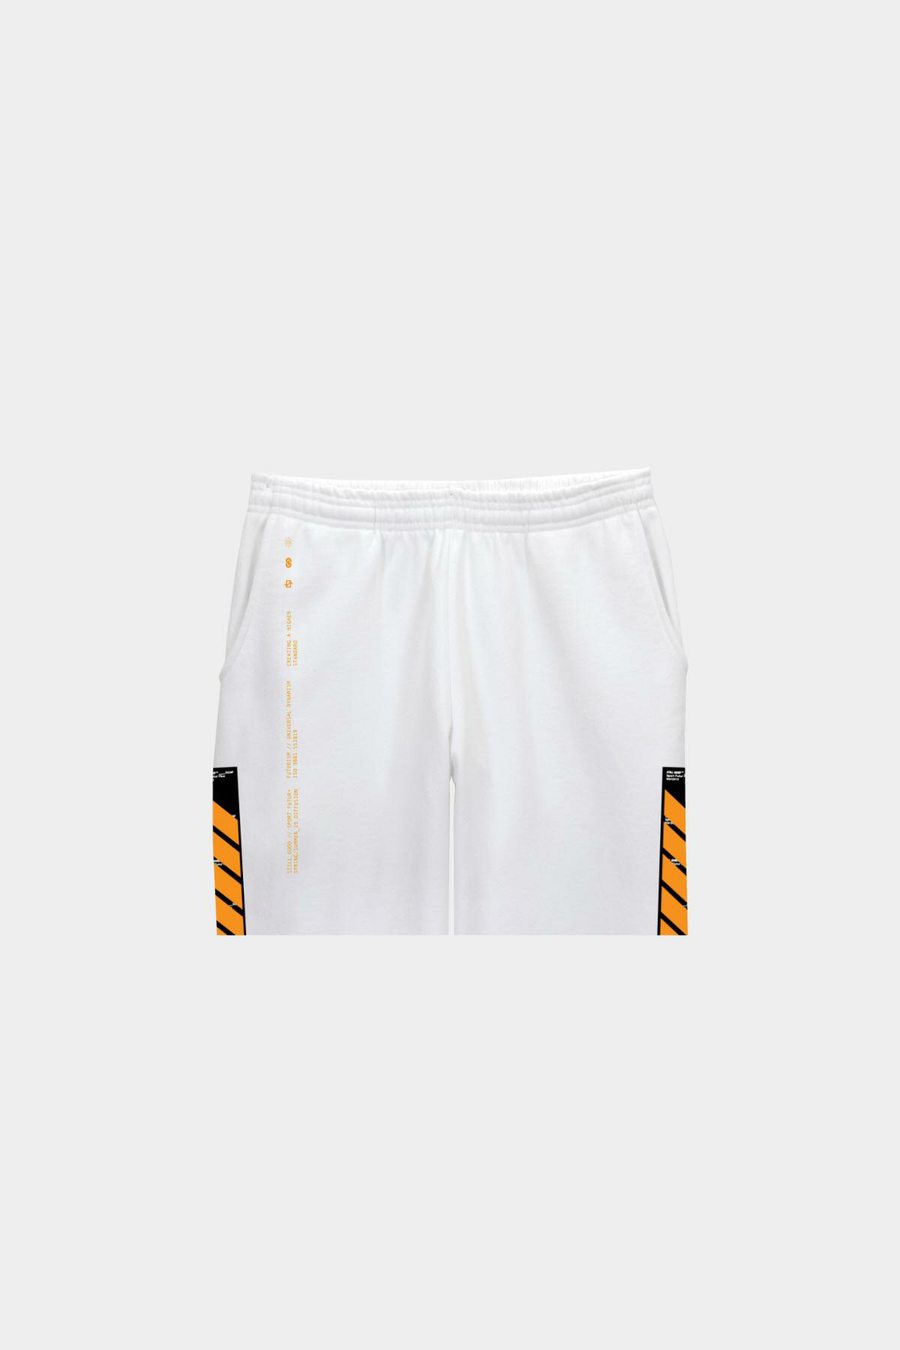 Velocity Shorts White / XS | Still Good